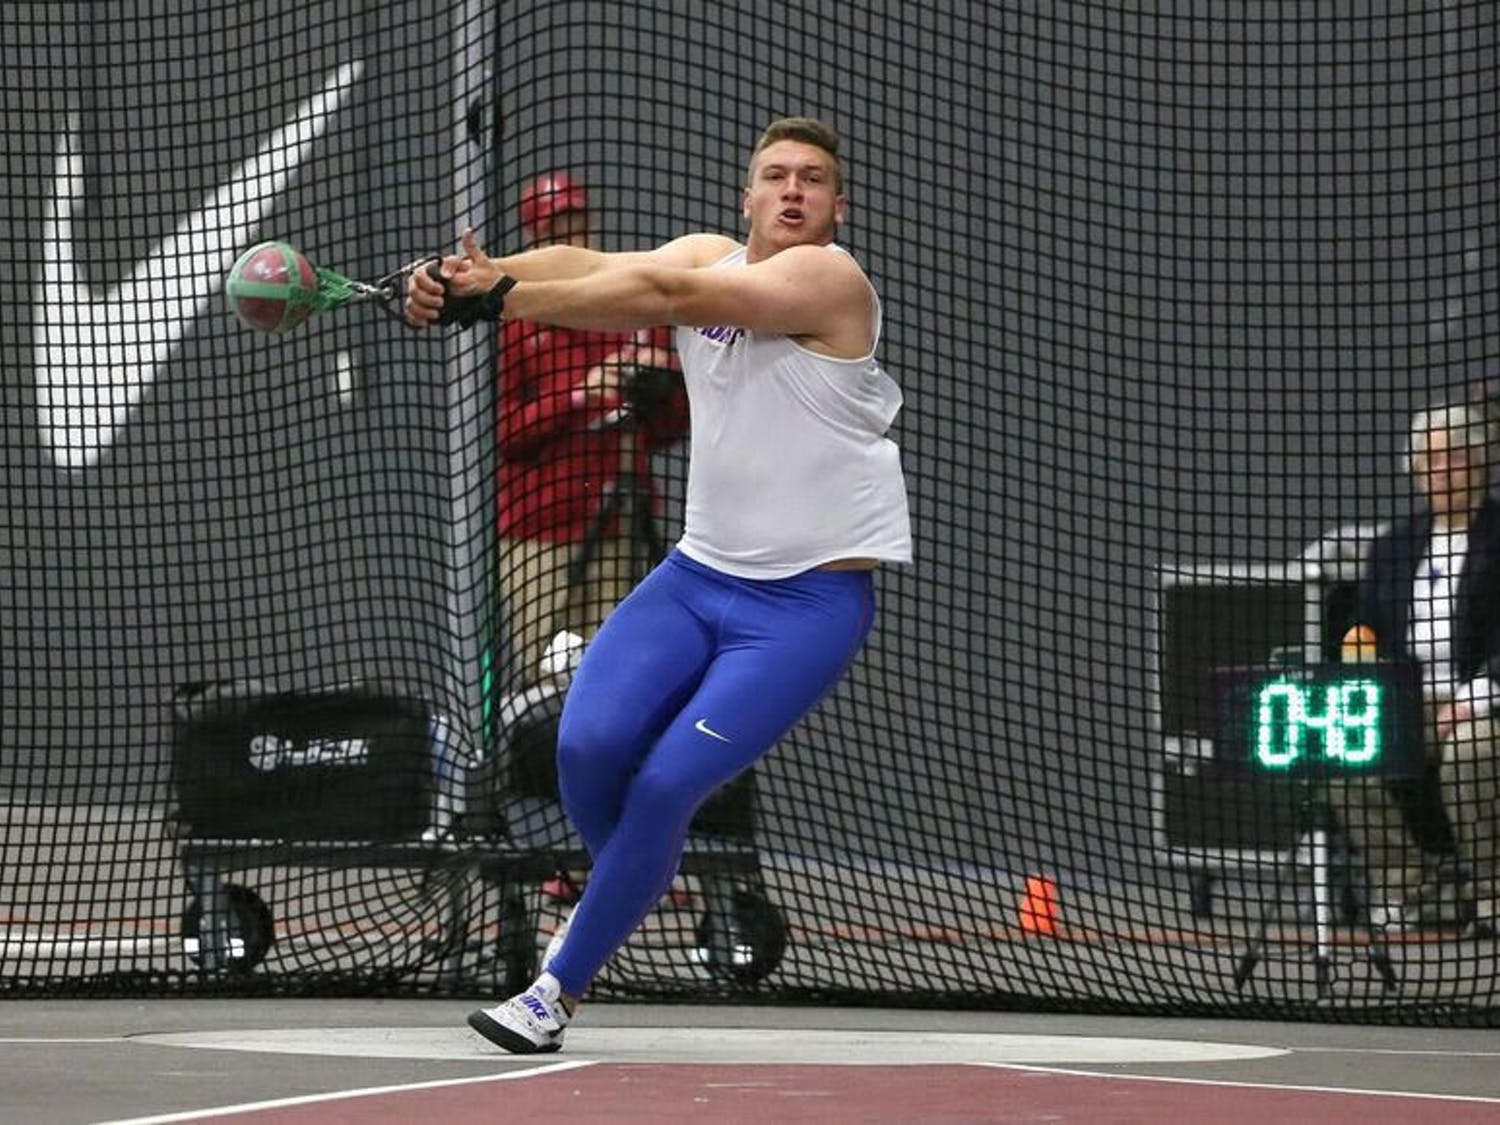 Redshirt junior AJ McFarland placed sixth in the hammer throw at the SEC Outdoor Championship. His teammates, freshman Thomas Mardal and redshirt sophomore Anders Eriksson, finished fifth and second, respectively.